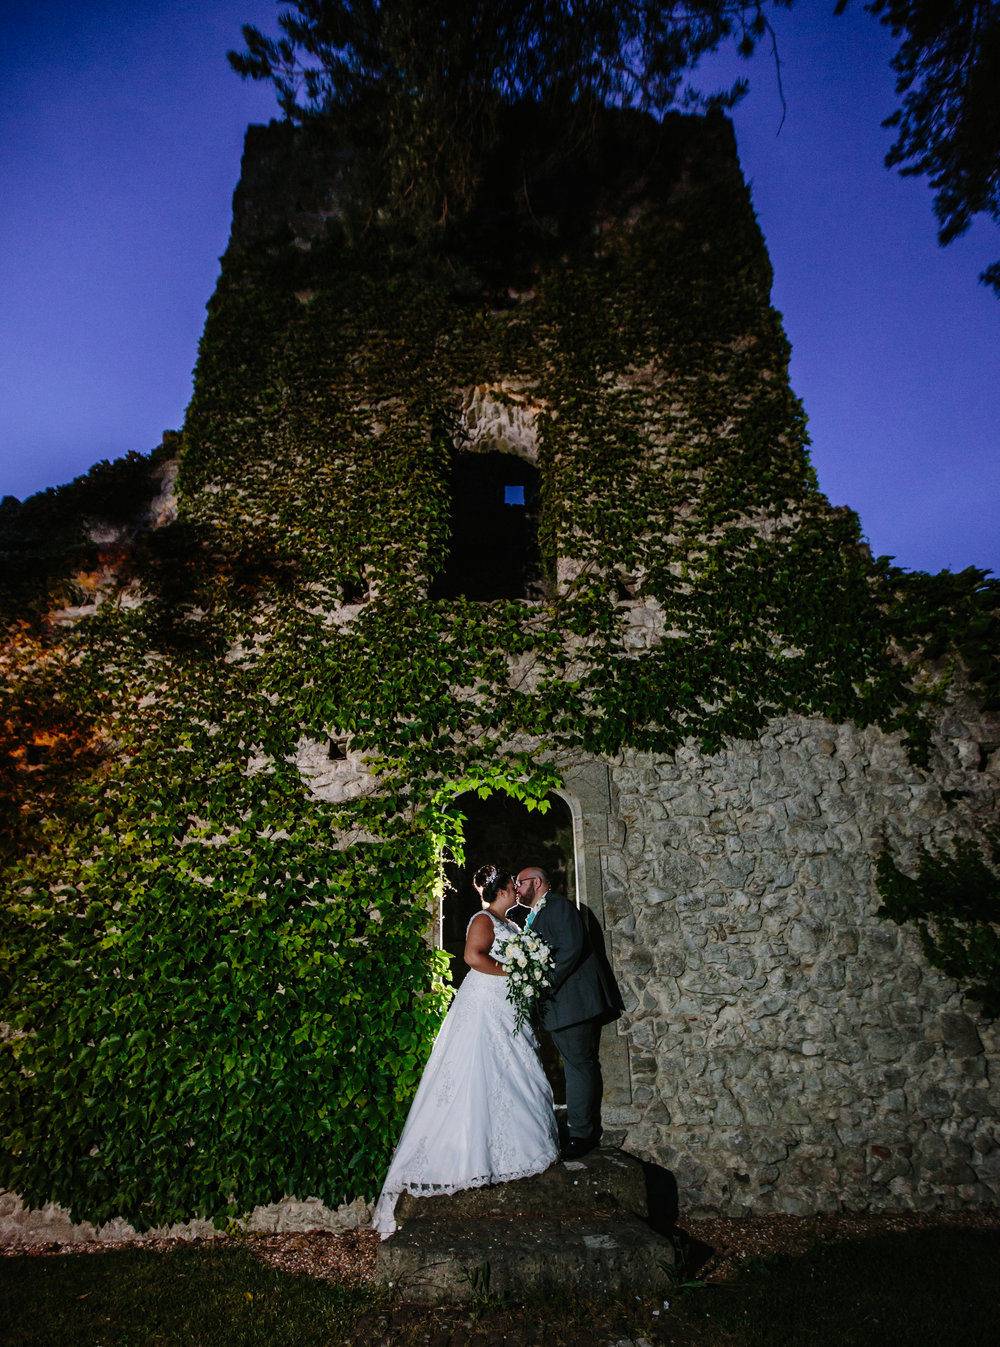 westenhangar-castle-kent-london-wedding-photography-portrait-71